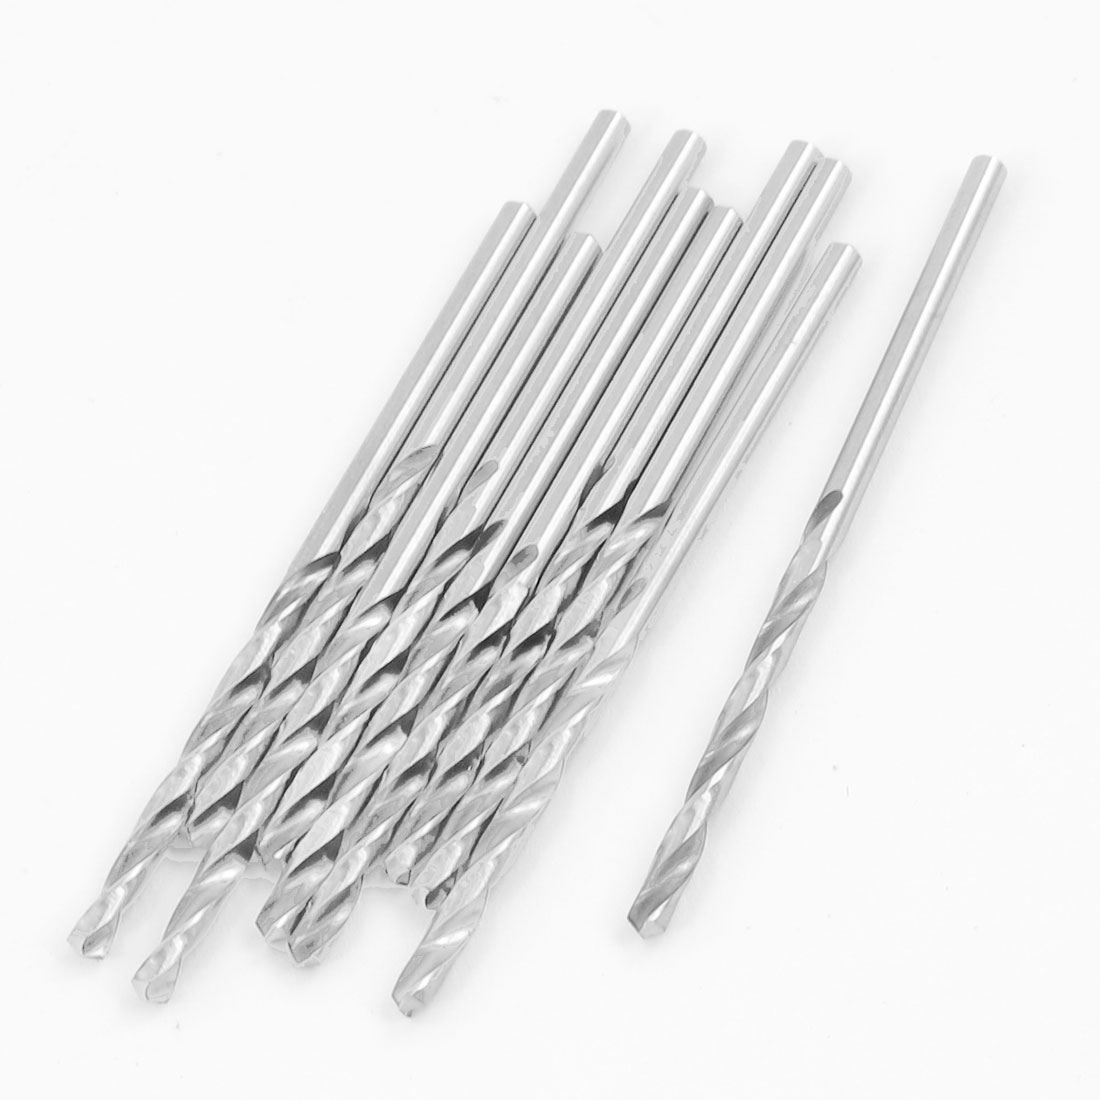 10 Pcs Split Point Straight Shank HSS Fully Ground Twist Drill Bits 2.2mm